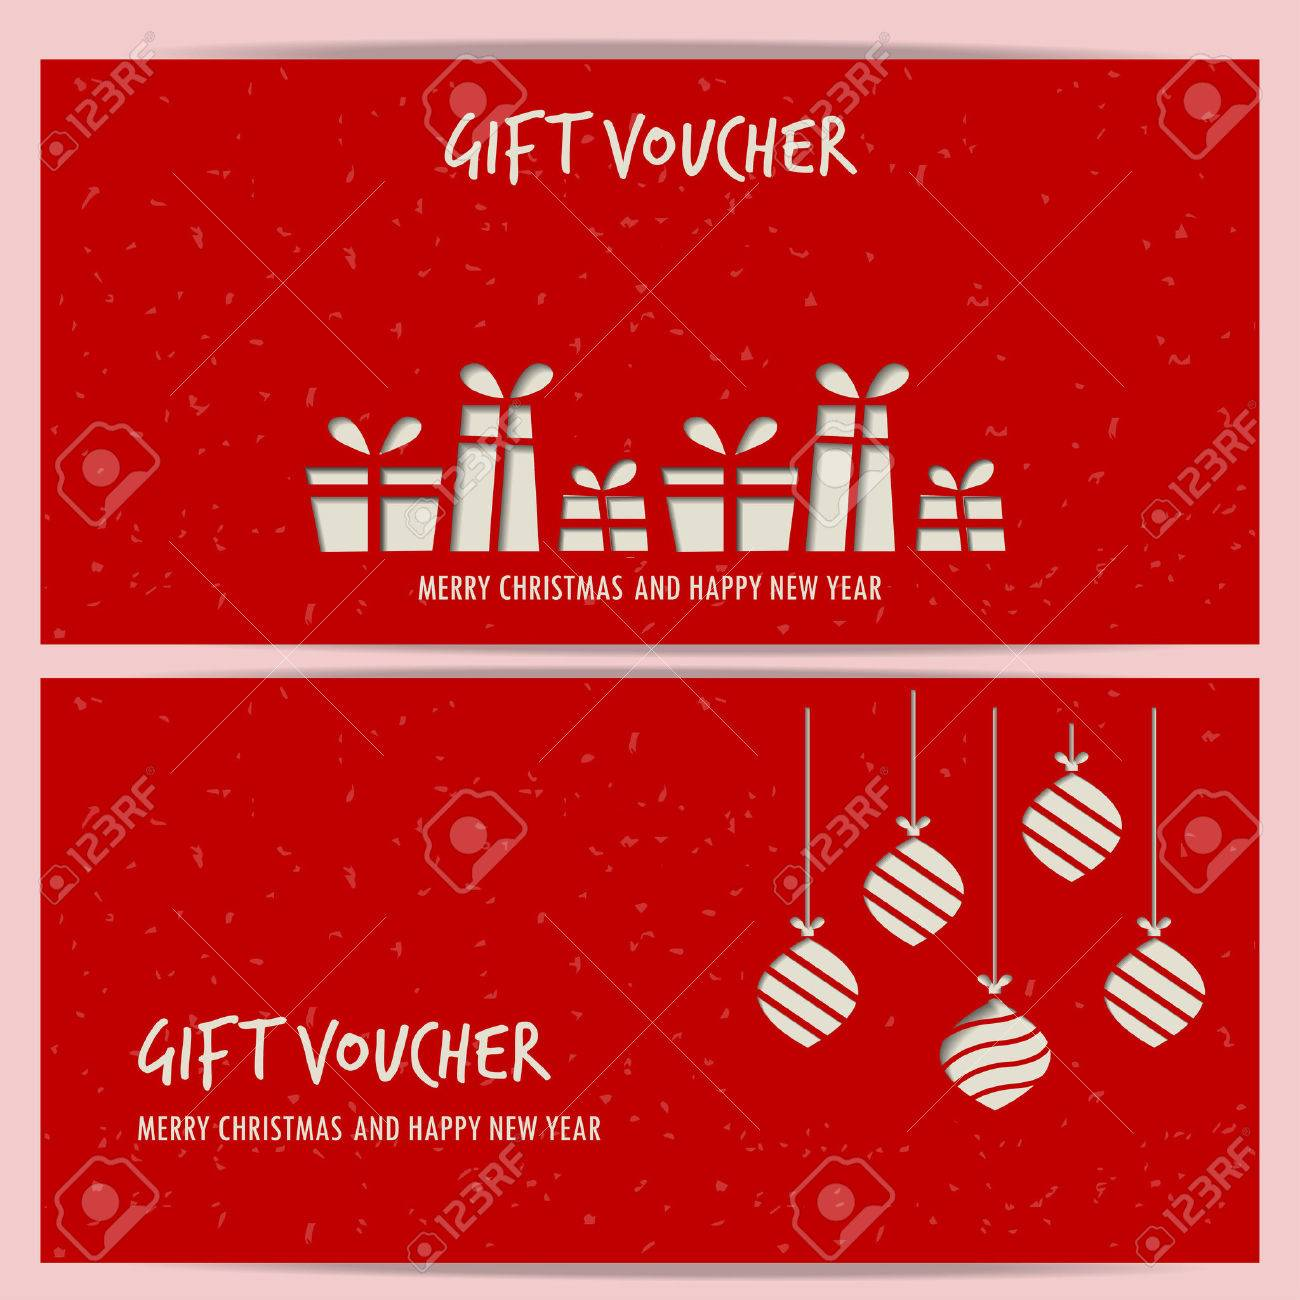 christmas and new year gift voucher certificate coupon template. can be use for business shopping card, customer sale and promotion, layout, banner, web design. vector illustration - 48758340